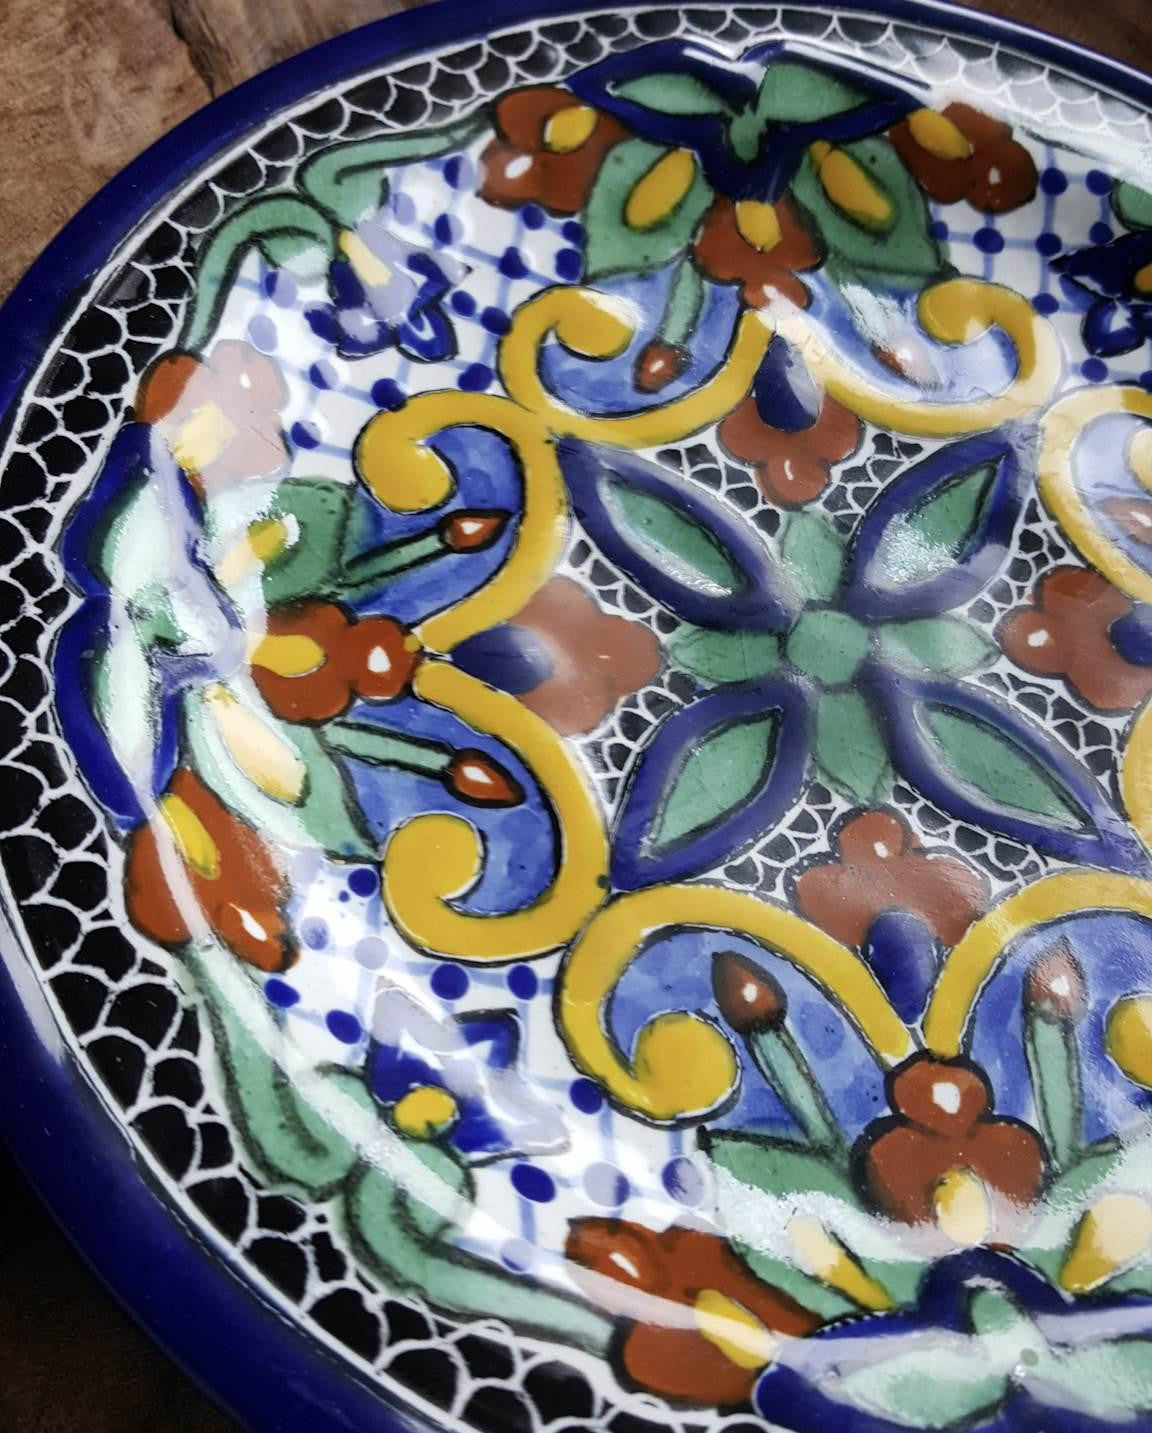 ... Rustica Gift Mosaico Mayolica Mexican Talavera Dinner Plate Italian pottery style detail ... & Mosaico Mexican Talavera Pottery Dinner Plate | Rustica Gift